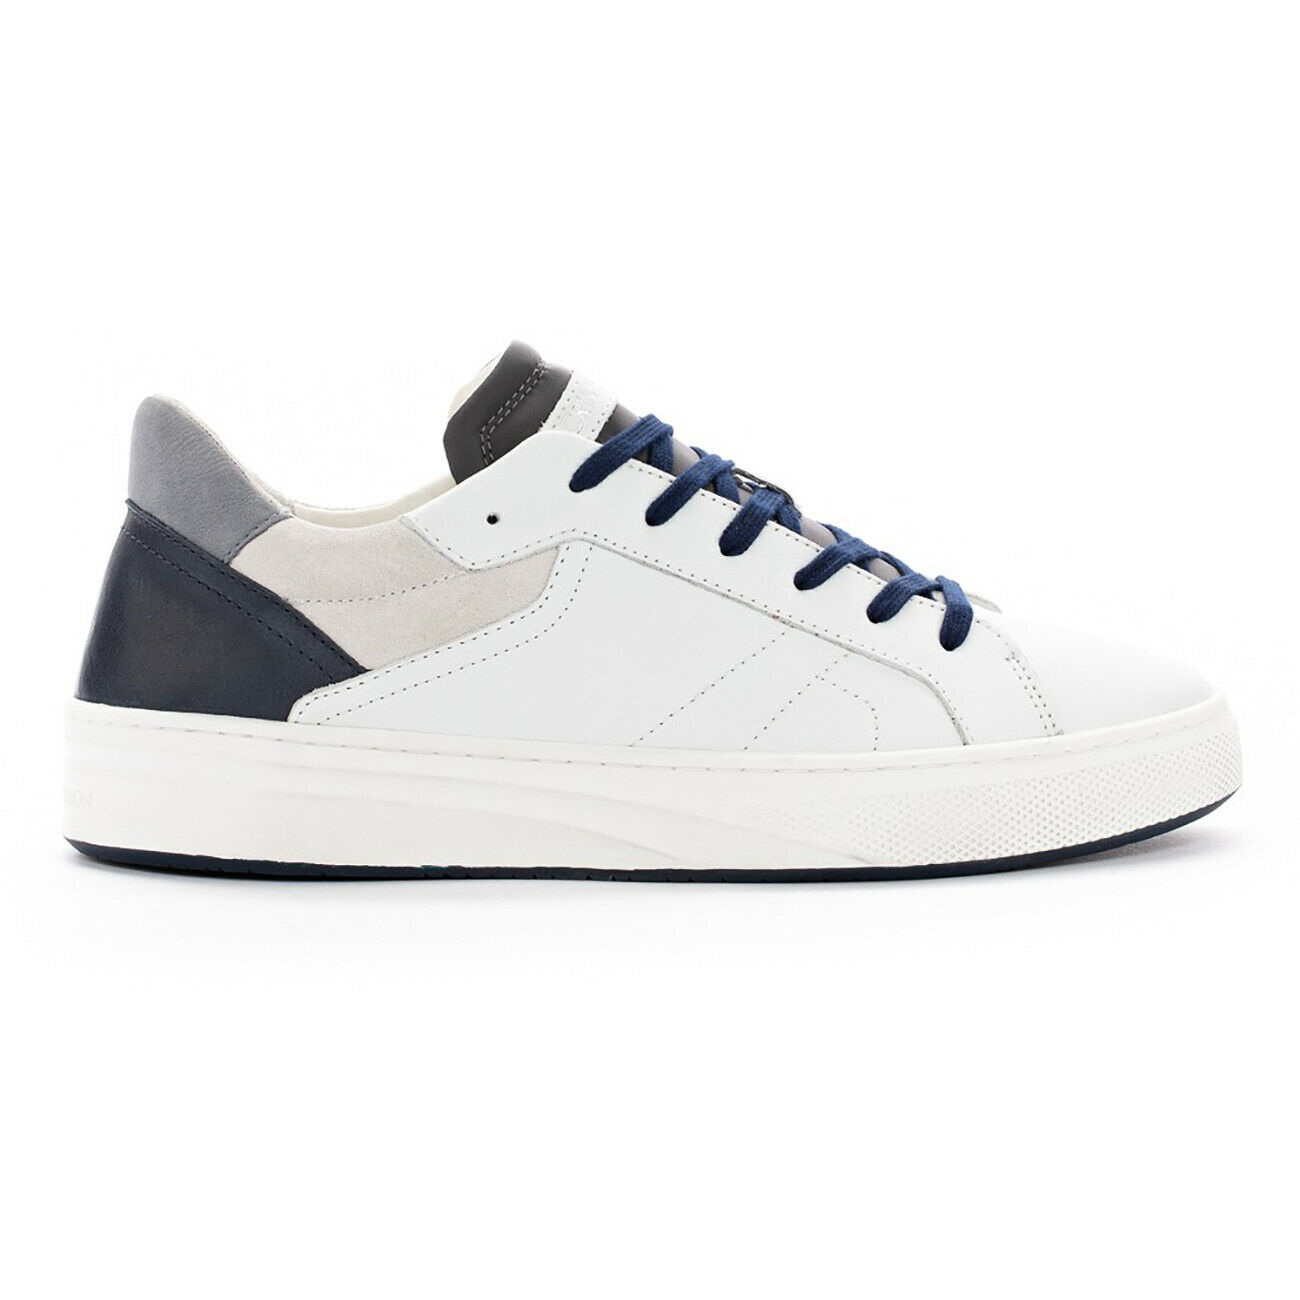 Crime London Men's shoes White bluee Grey 100% Leather Art. Force 11304pp1.10